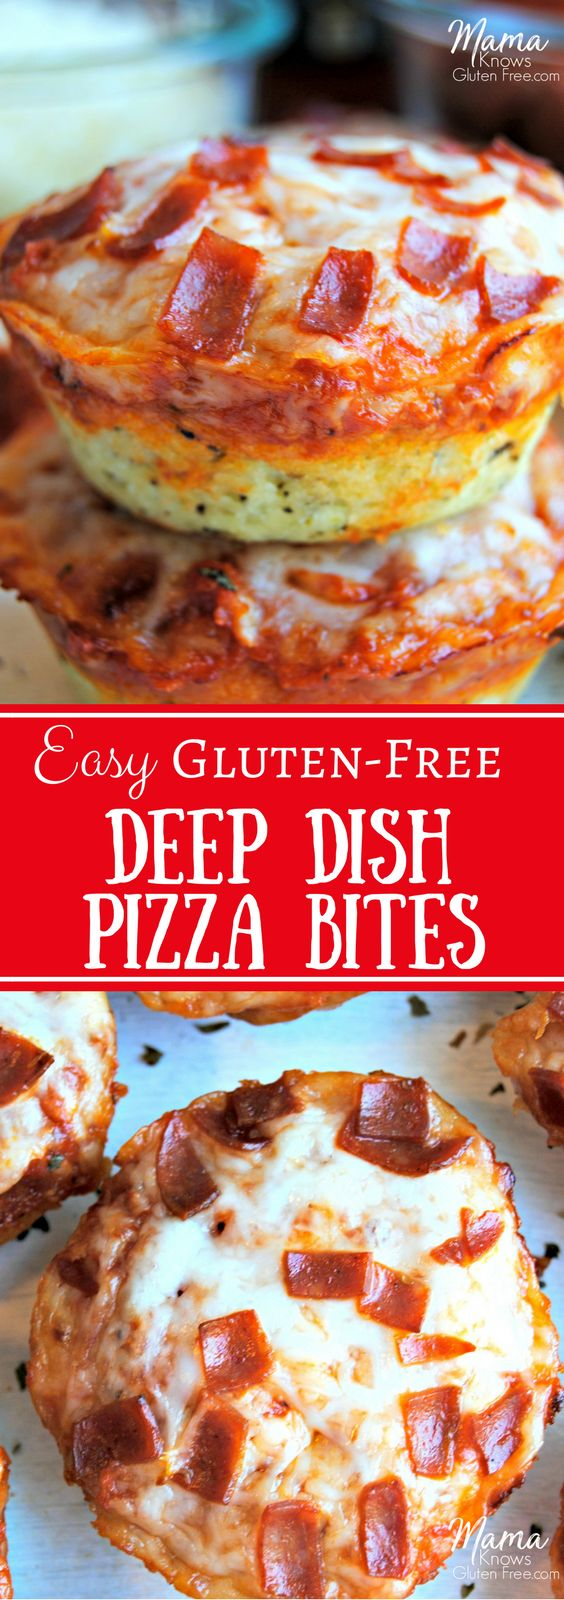 Gluten-free deep dish pizza bites are super easy to make. Perfect for lunch, a quick and easy dinner, as a snack or an appetizer for game-day or your next party.